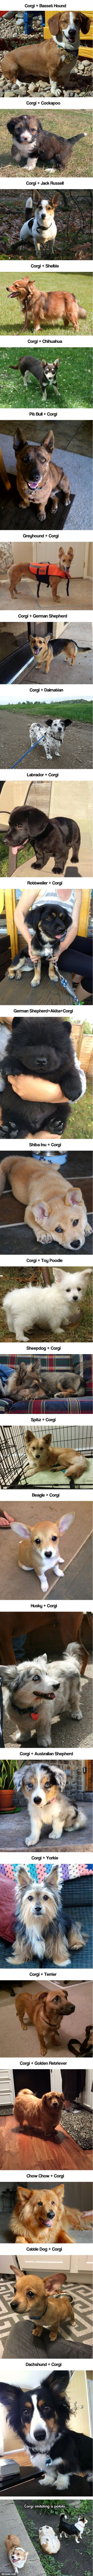 26 Corgeous Corgi Mixes